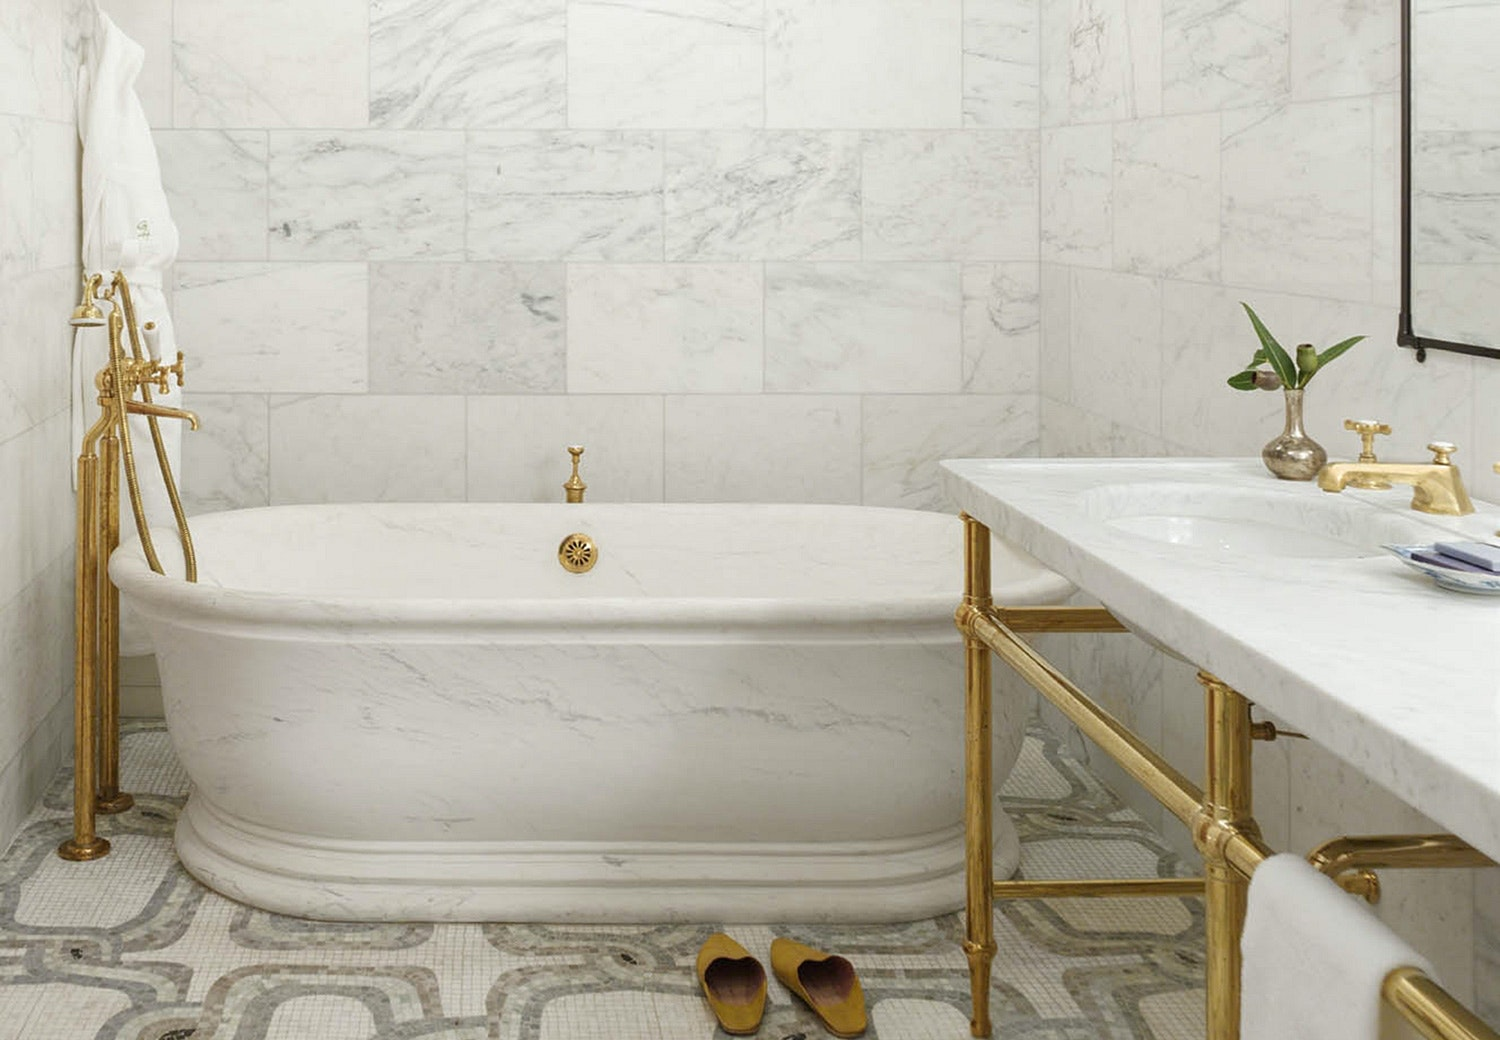 The Greenwich Hotel bathroom marble